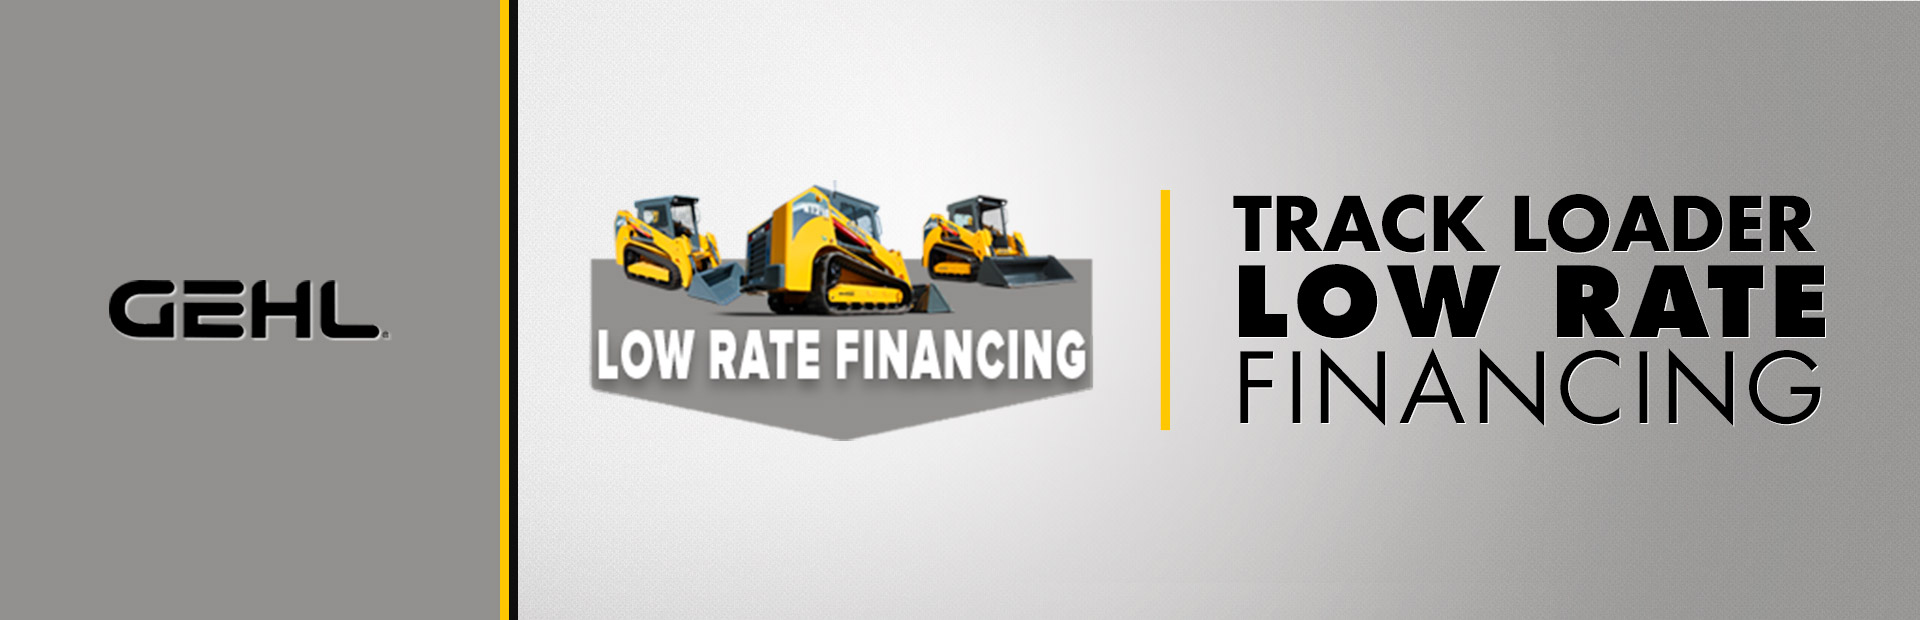 Gehl: Track Loader - Low Rate Financing